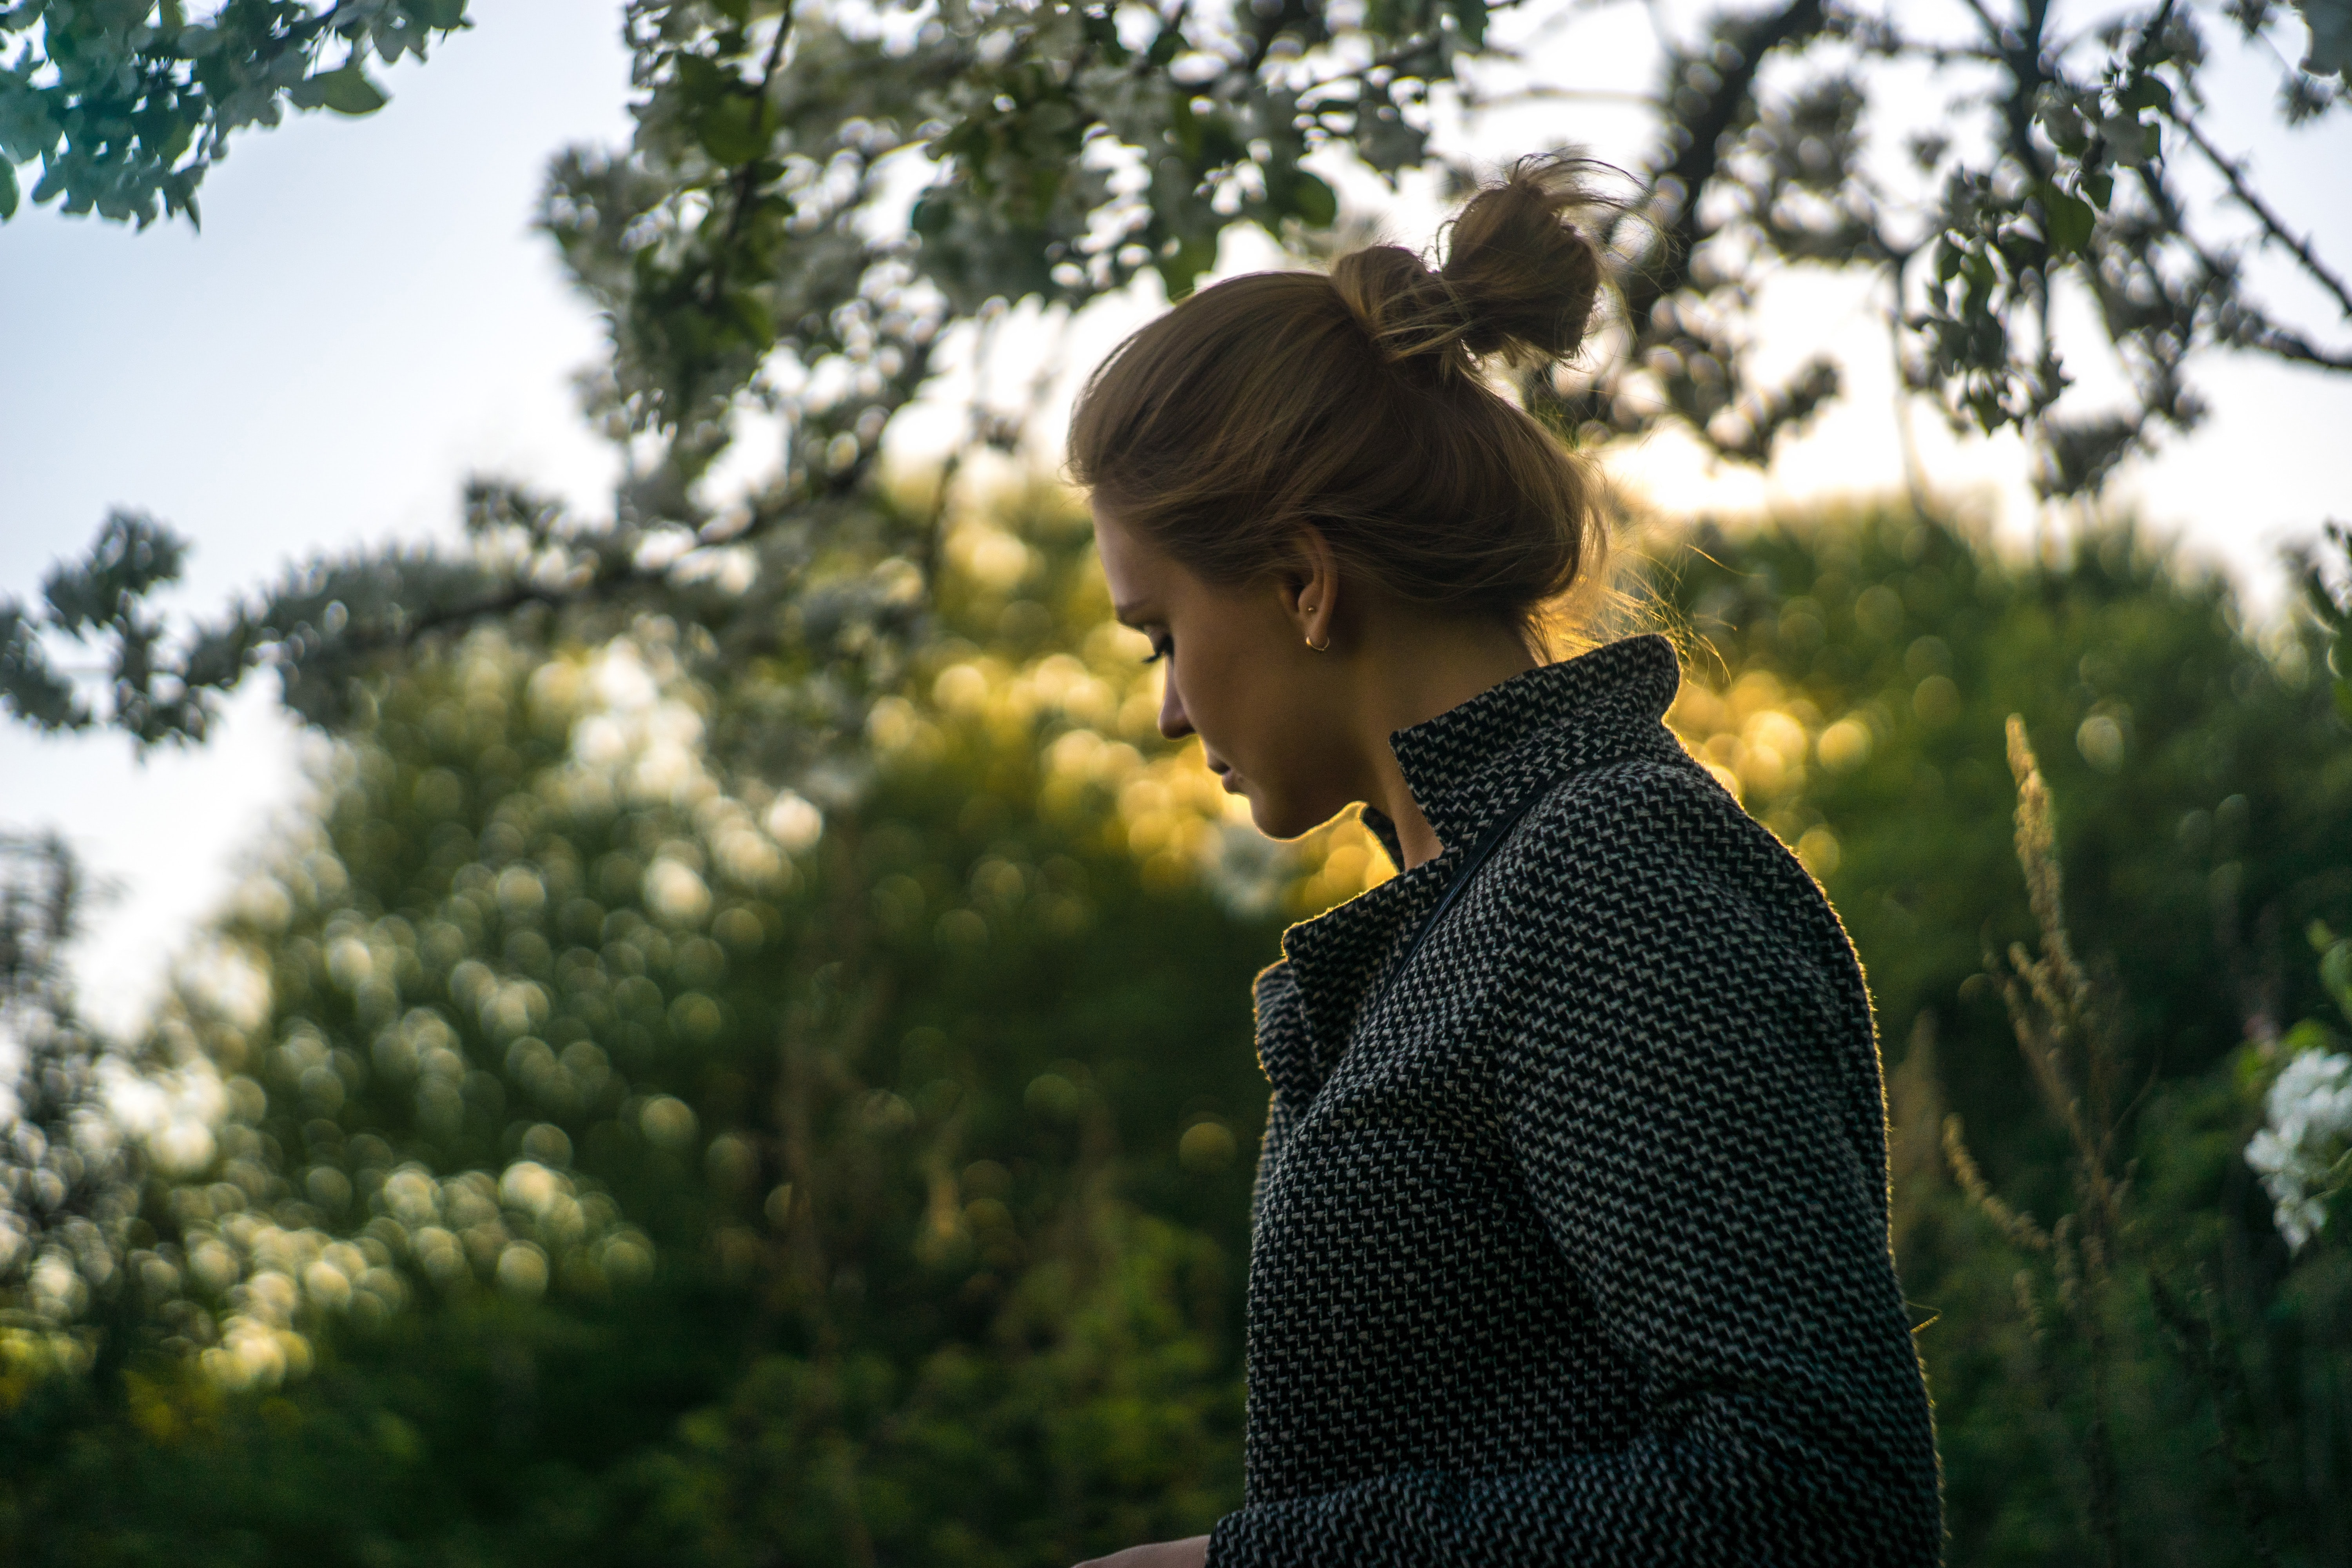 A woman with a bun wearing a coat looks down against a background of trees